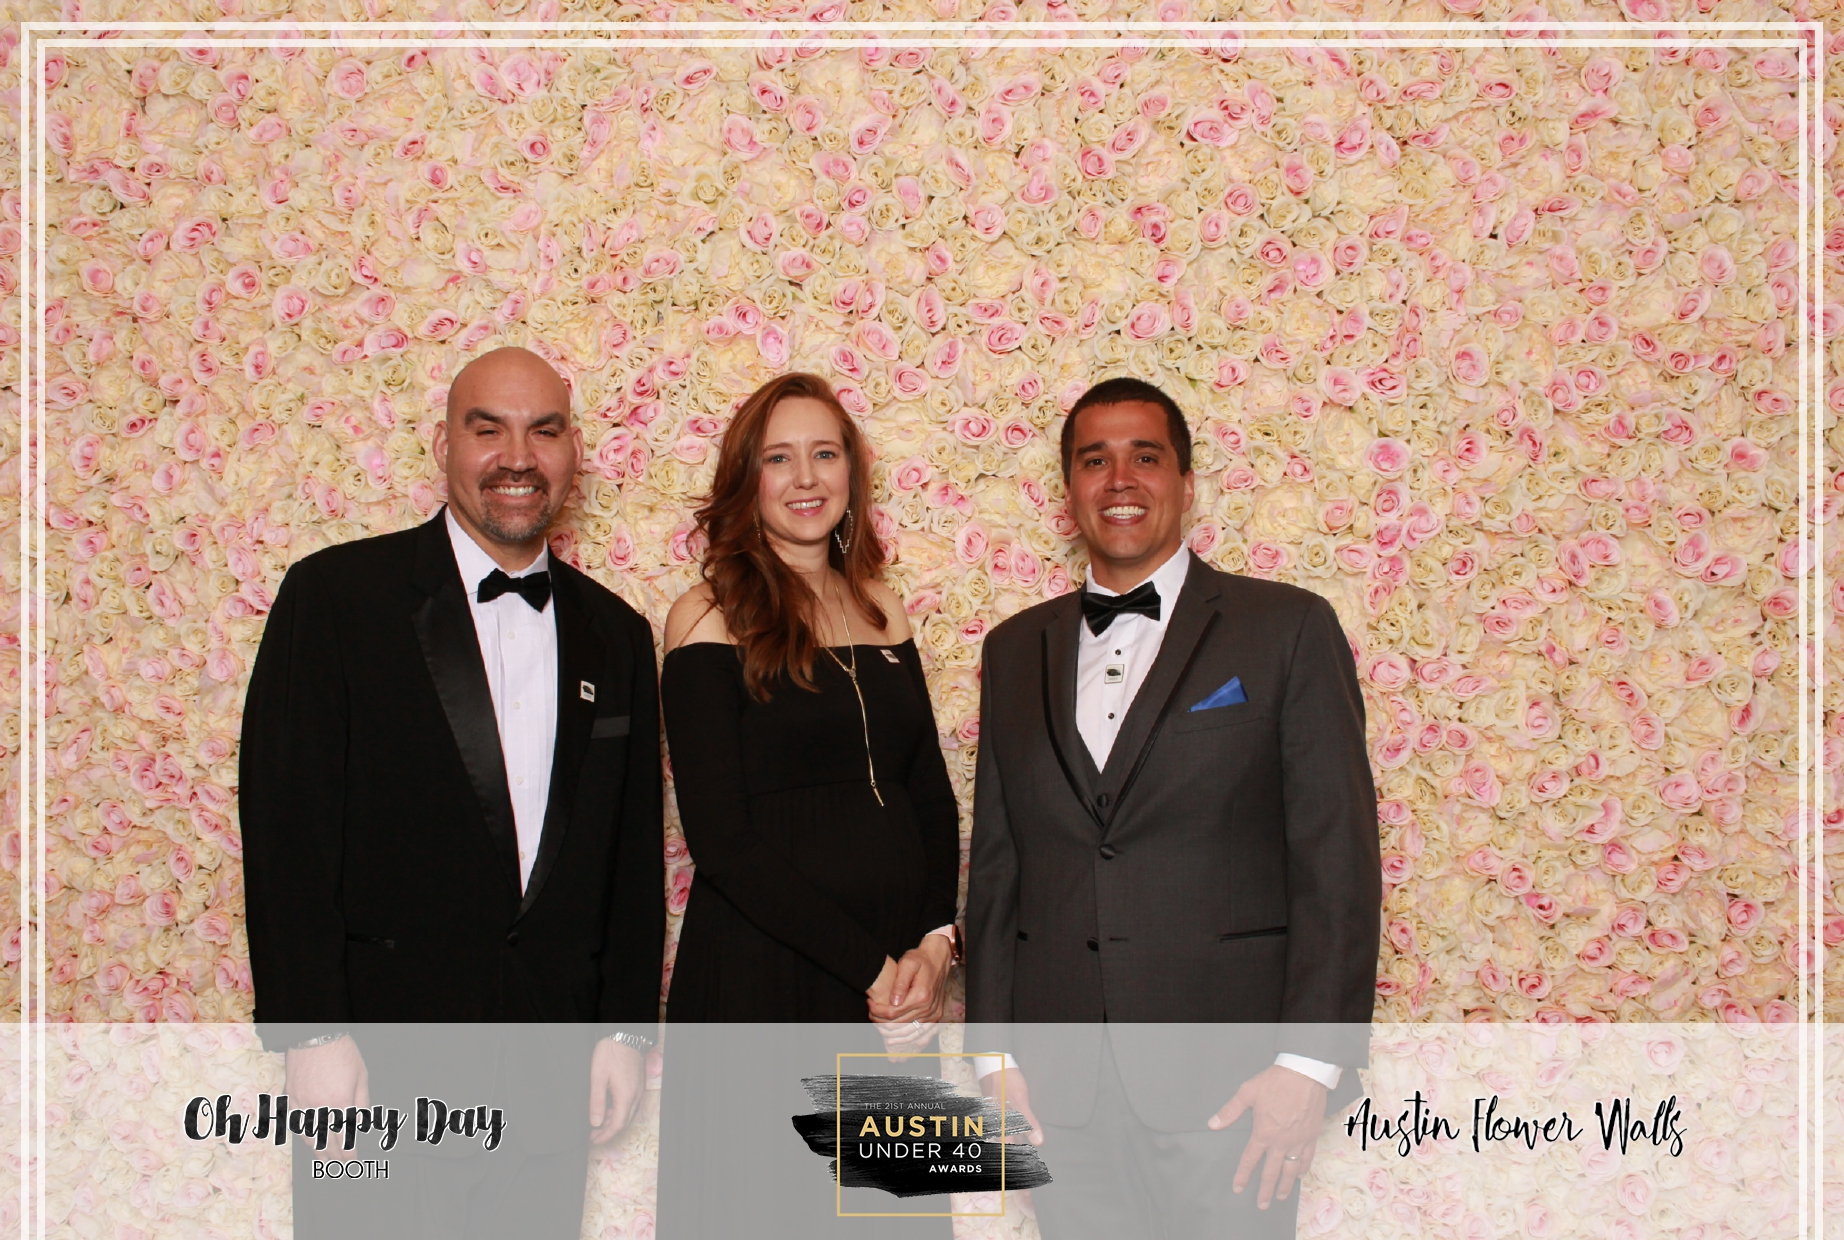 Oh Happy Day Booth - Austin Under 40-6.jpg